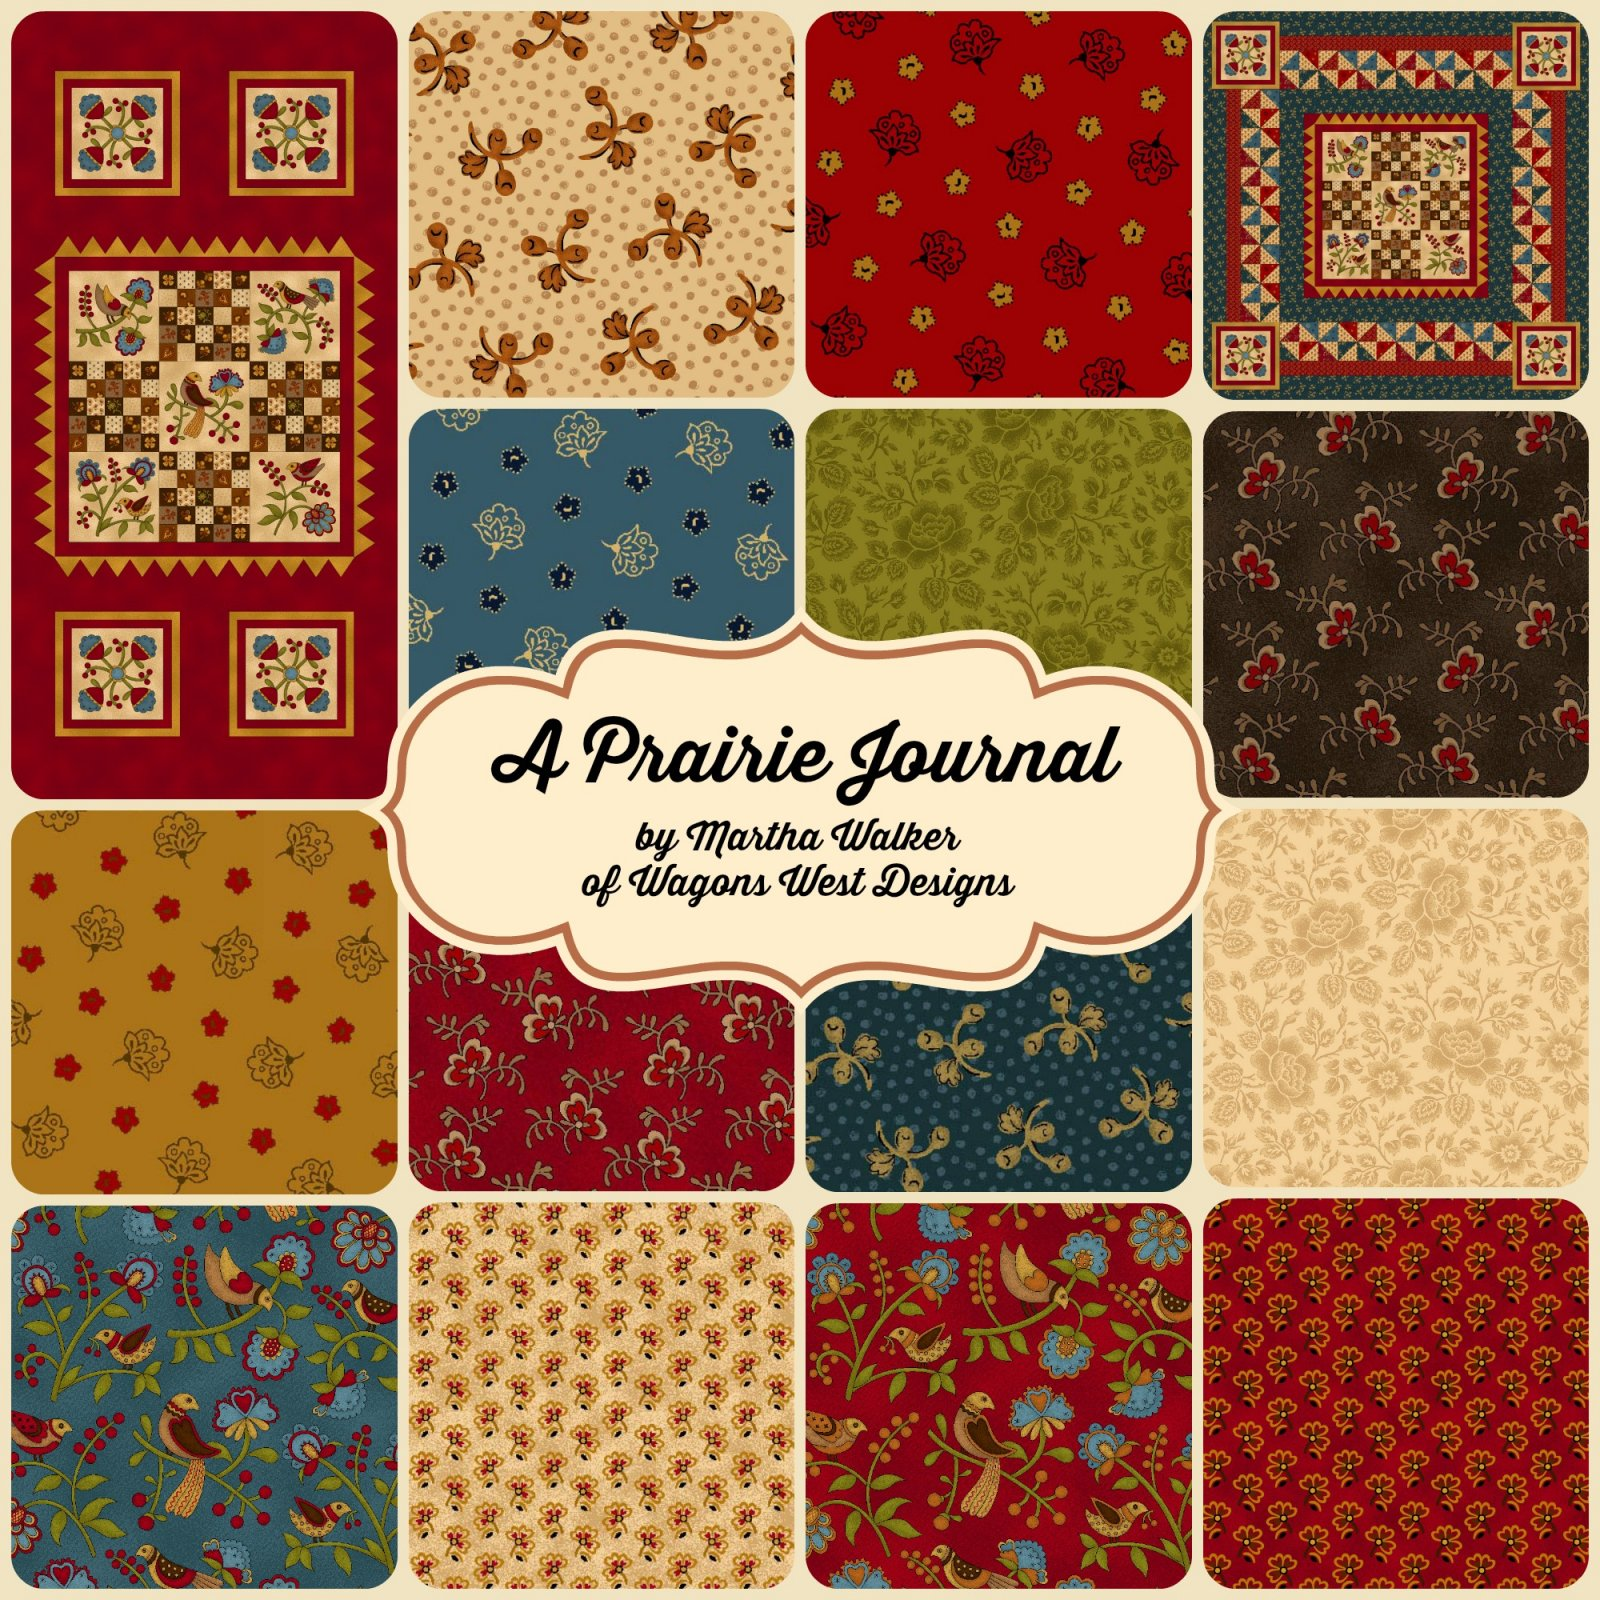 Licensed fabric designs by Martha Walker of Wagons West ... - photo#12